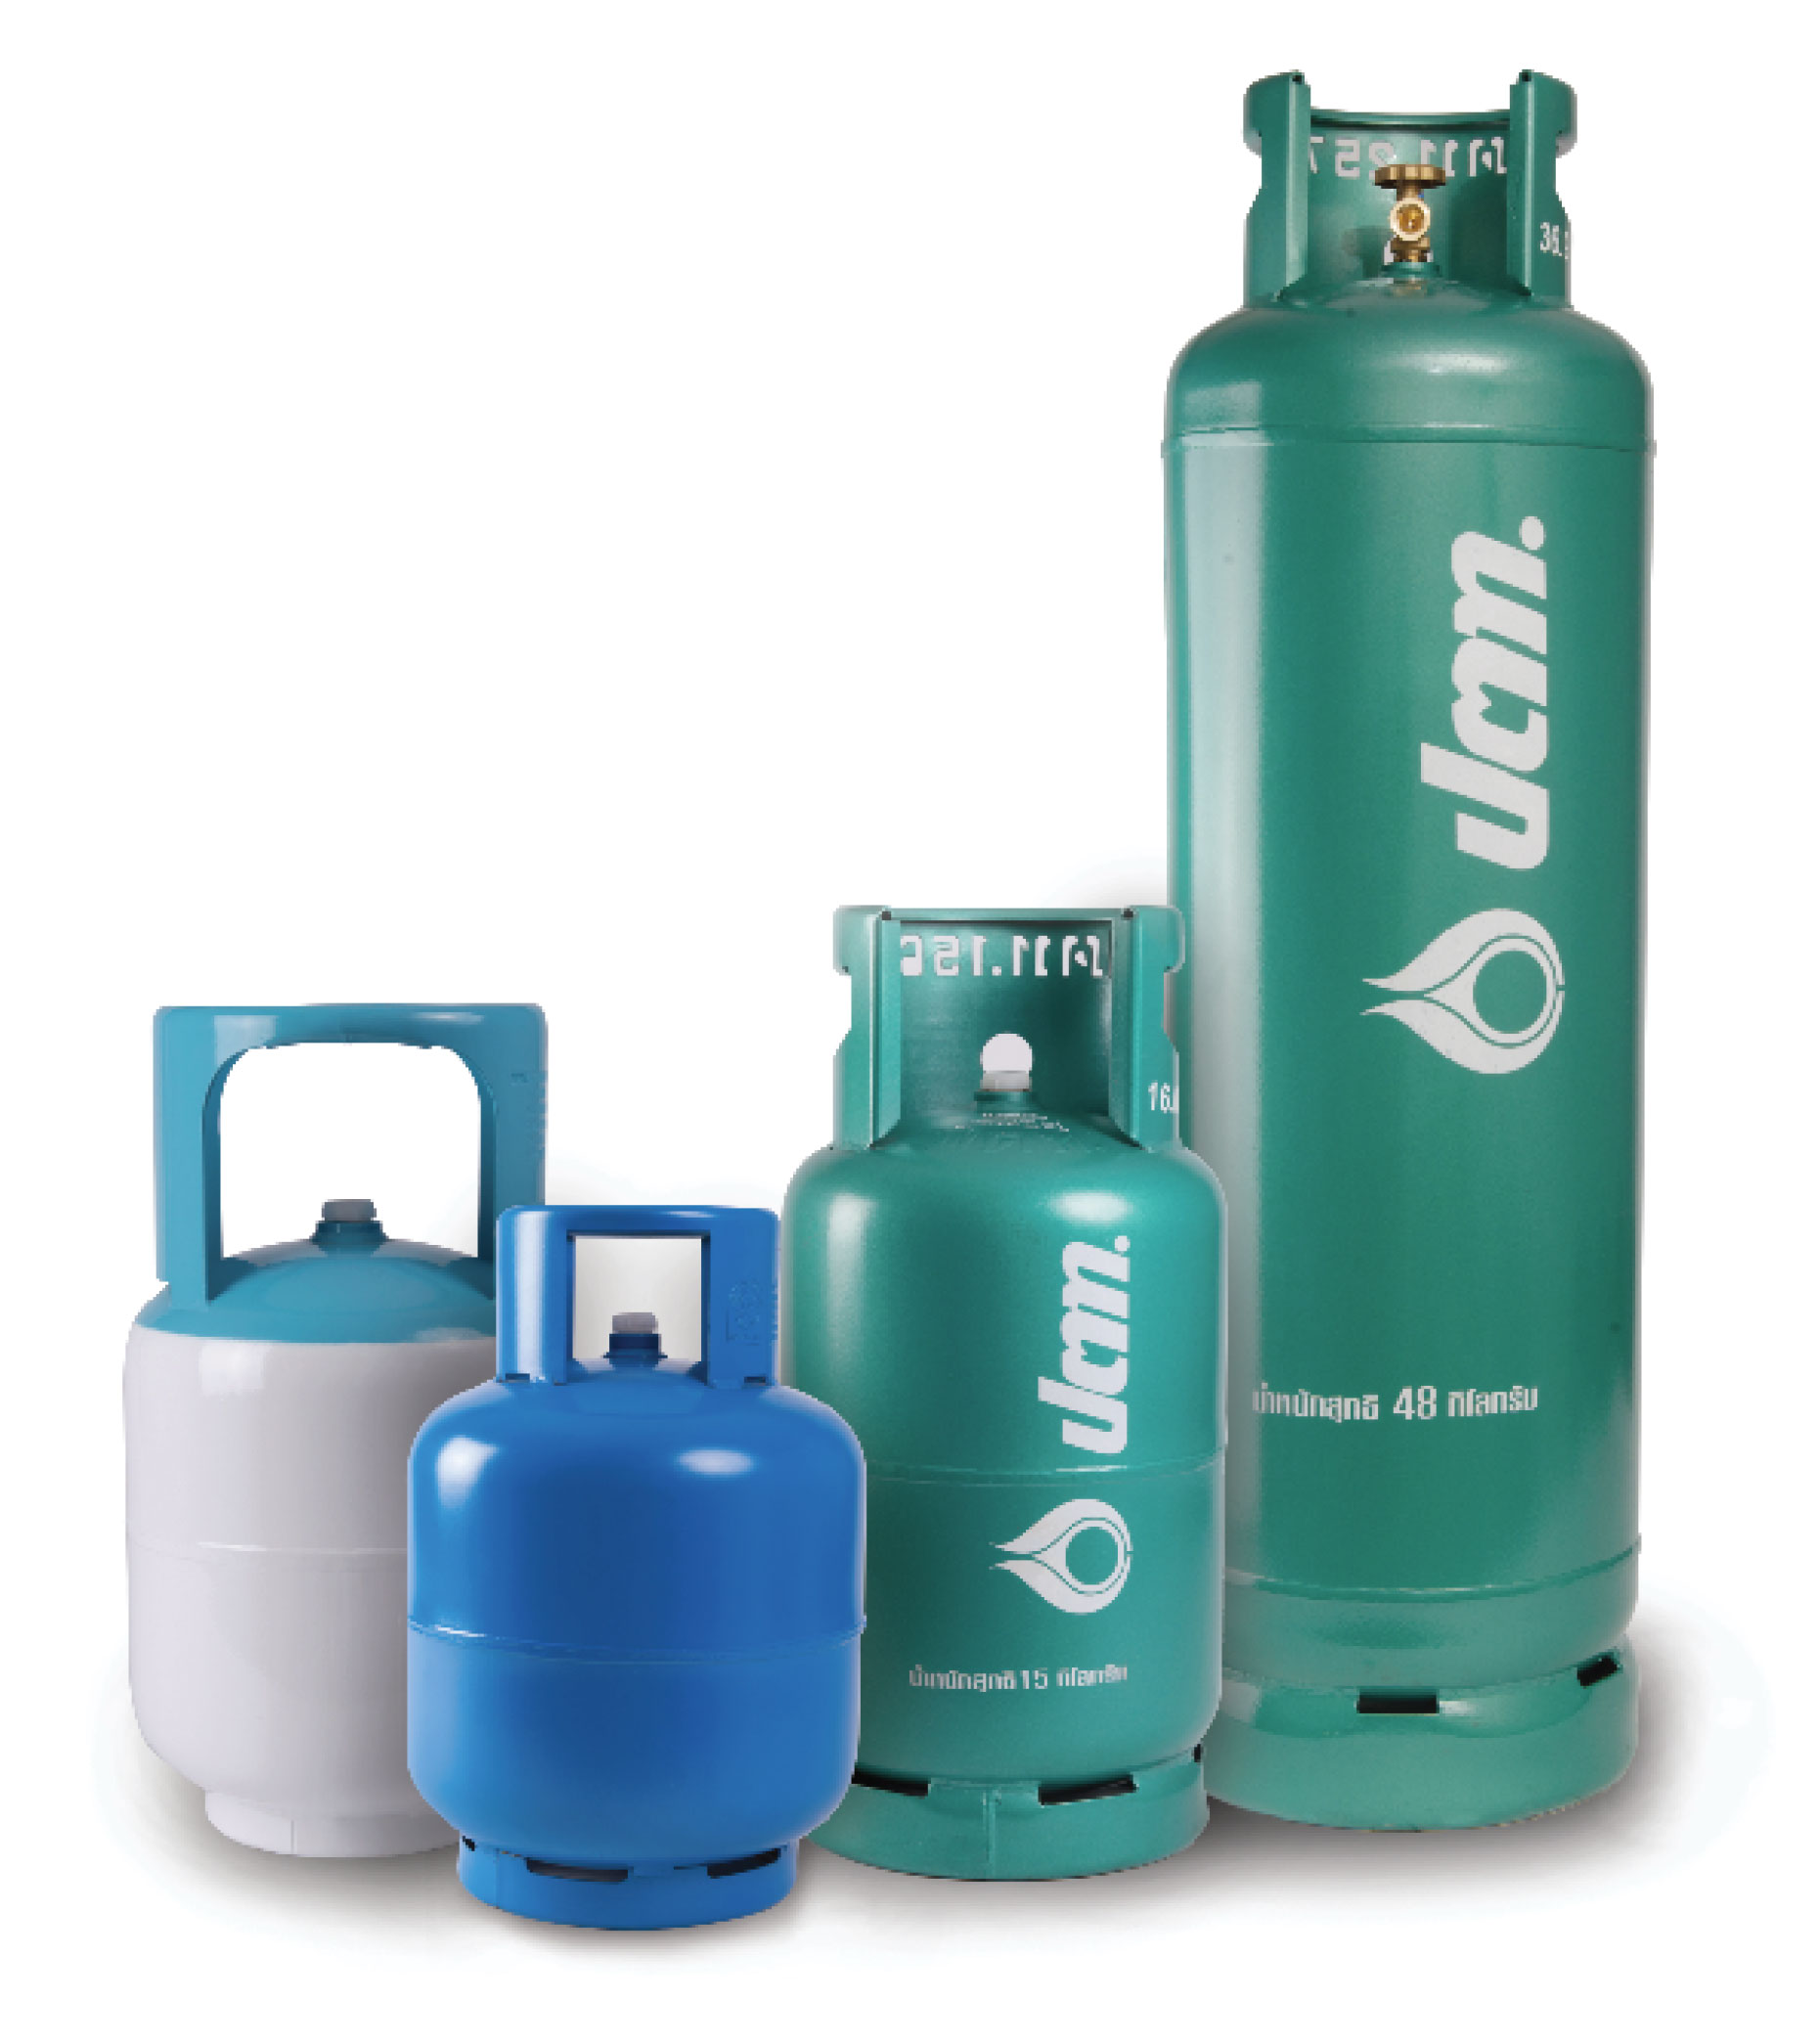 welded-lpg-gas-cylinder